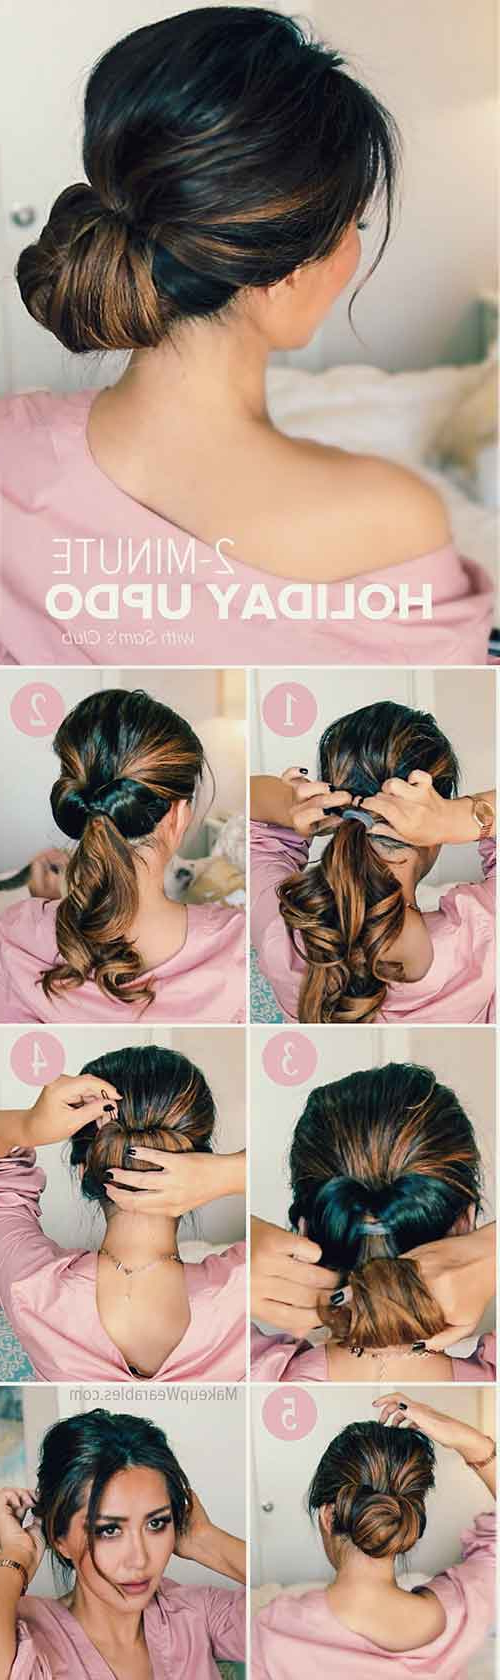 20 Stunningly Easy Diy Messy Buns Intended For Newest Double Twist Bun Updo Hairstyles (View 1 of 20)